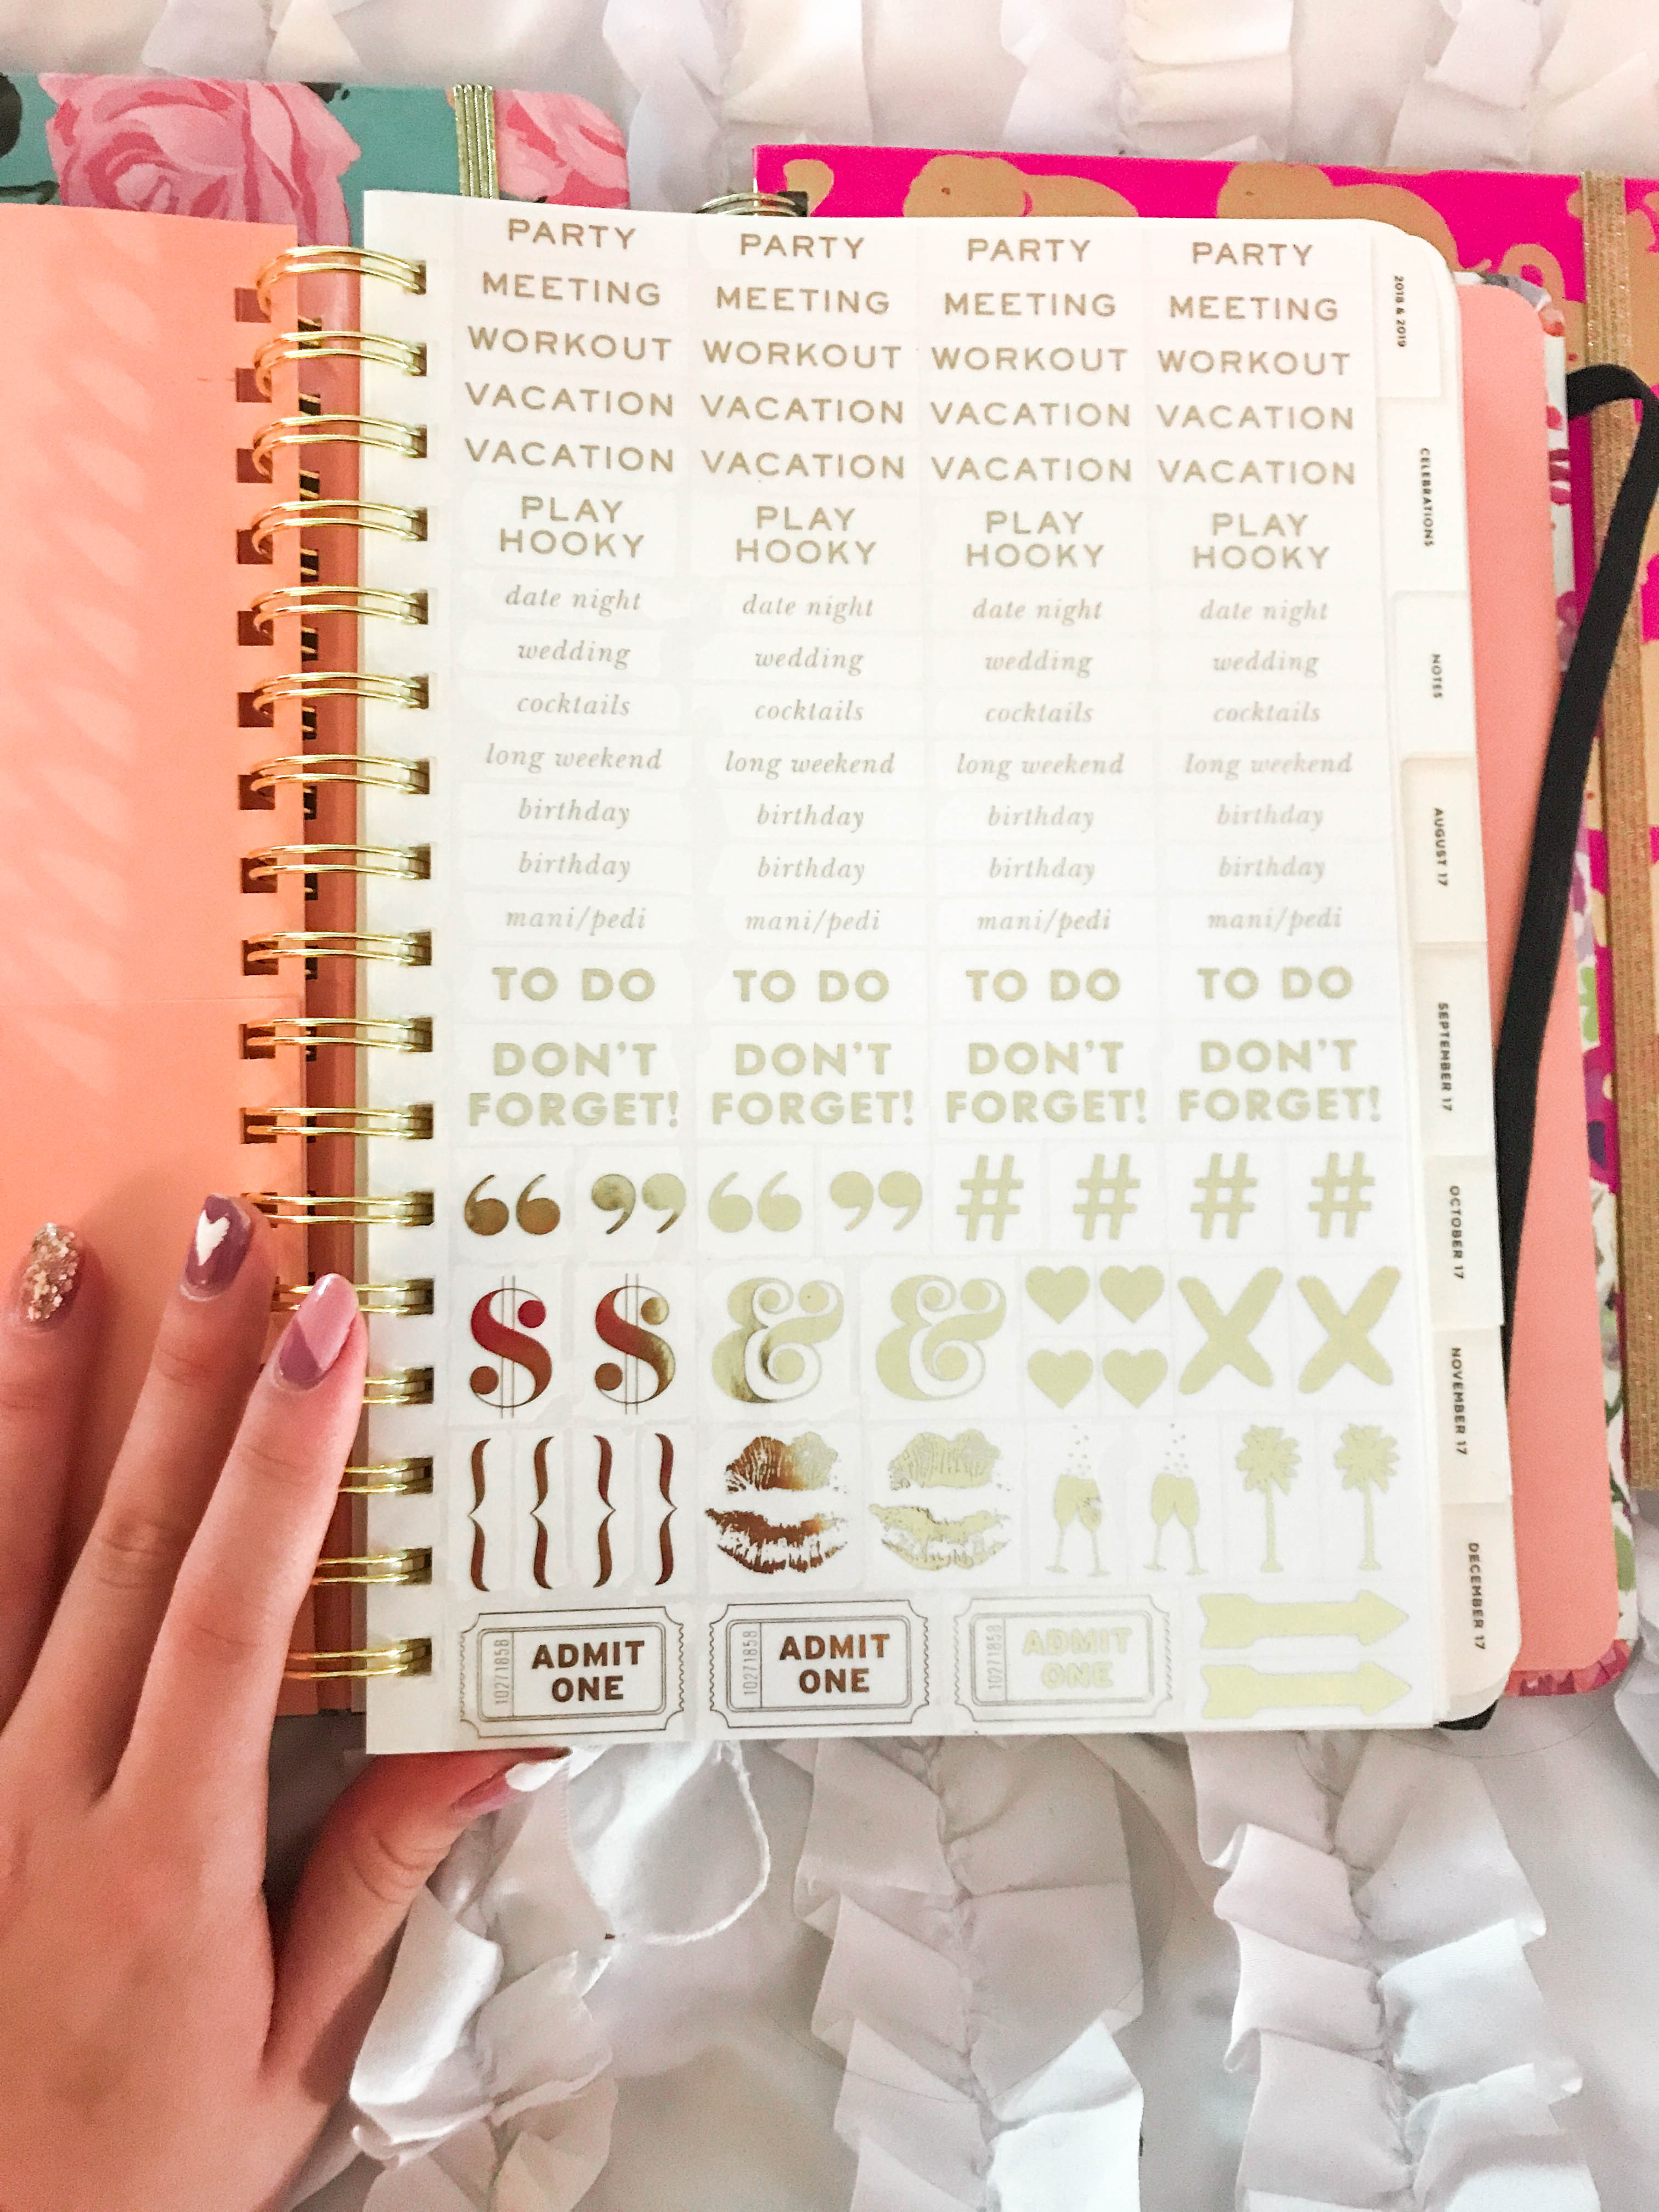 kate spade agenda planner gold metallic foil stickers on white ruffle duvet with heart manicure nail art organization stationary flatlay hand in photo